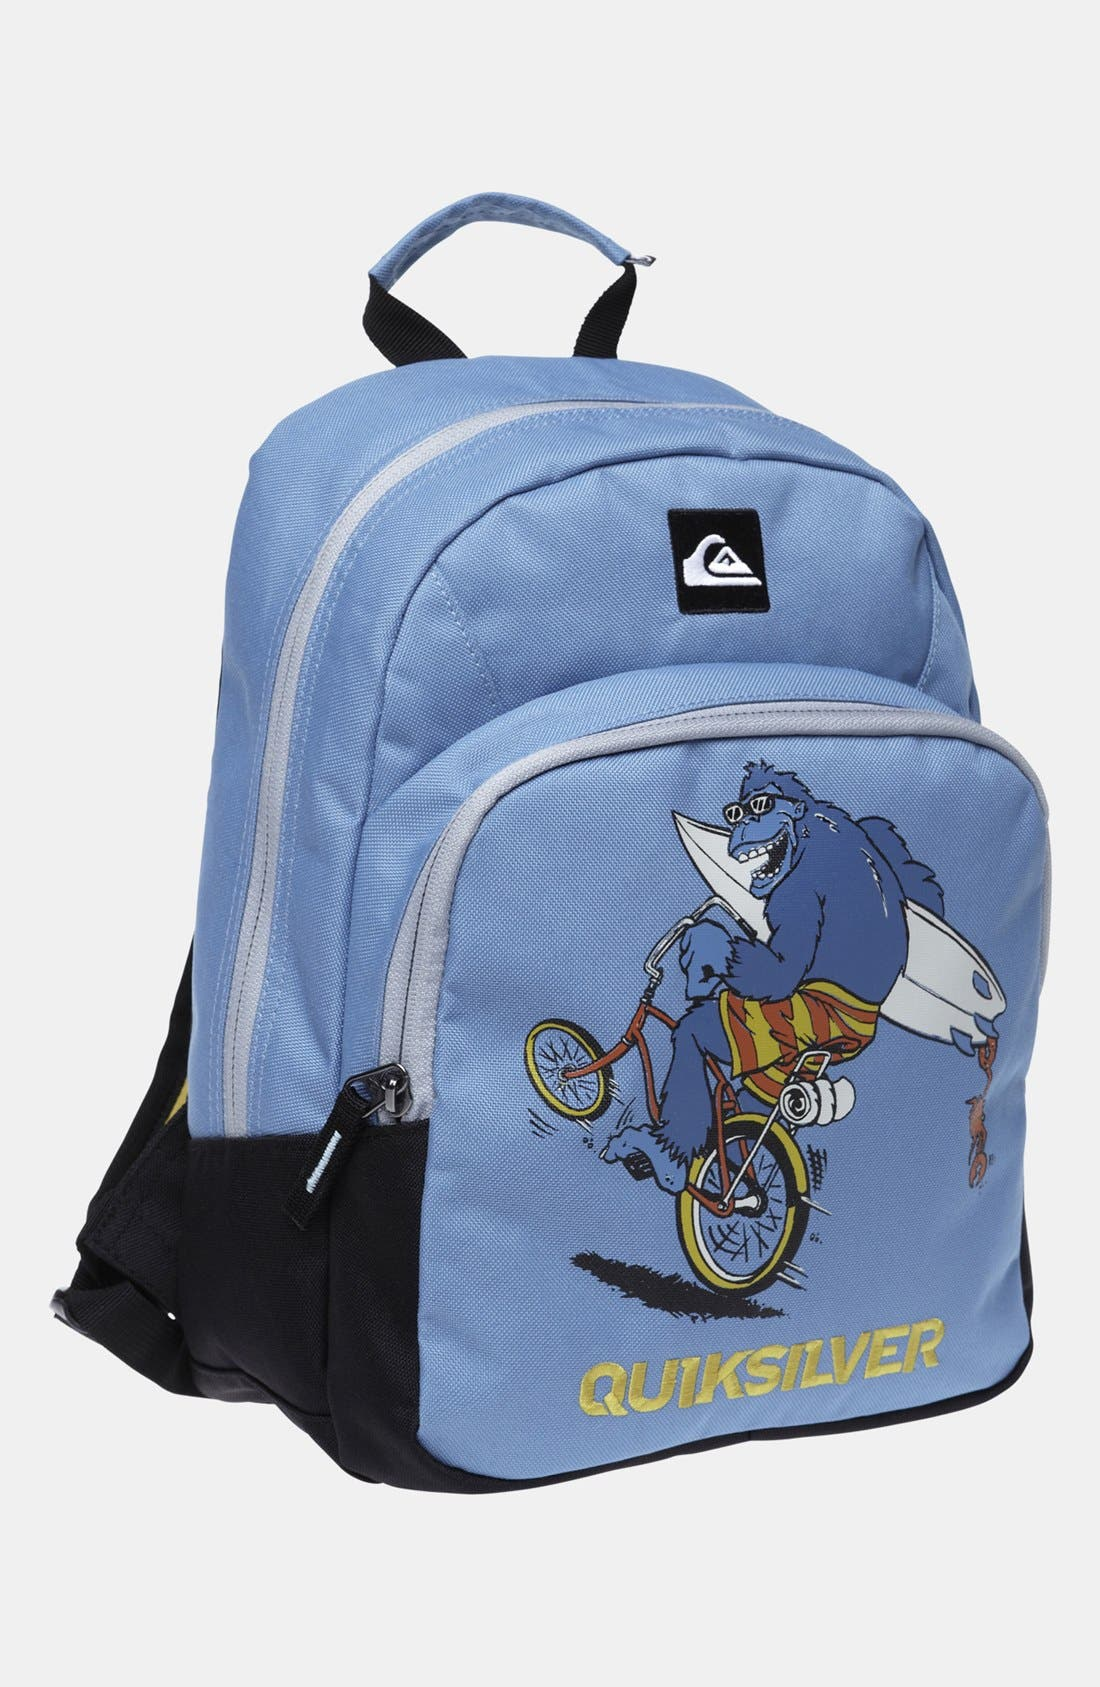 Alternate Image 1 Selected - Quiksilver 'Ankle Biter' Backpack (Boys)